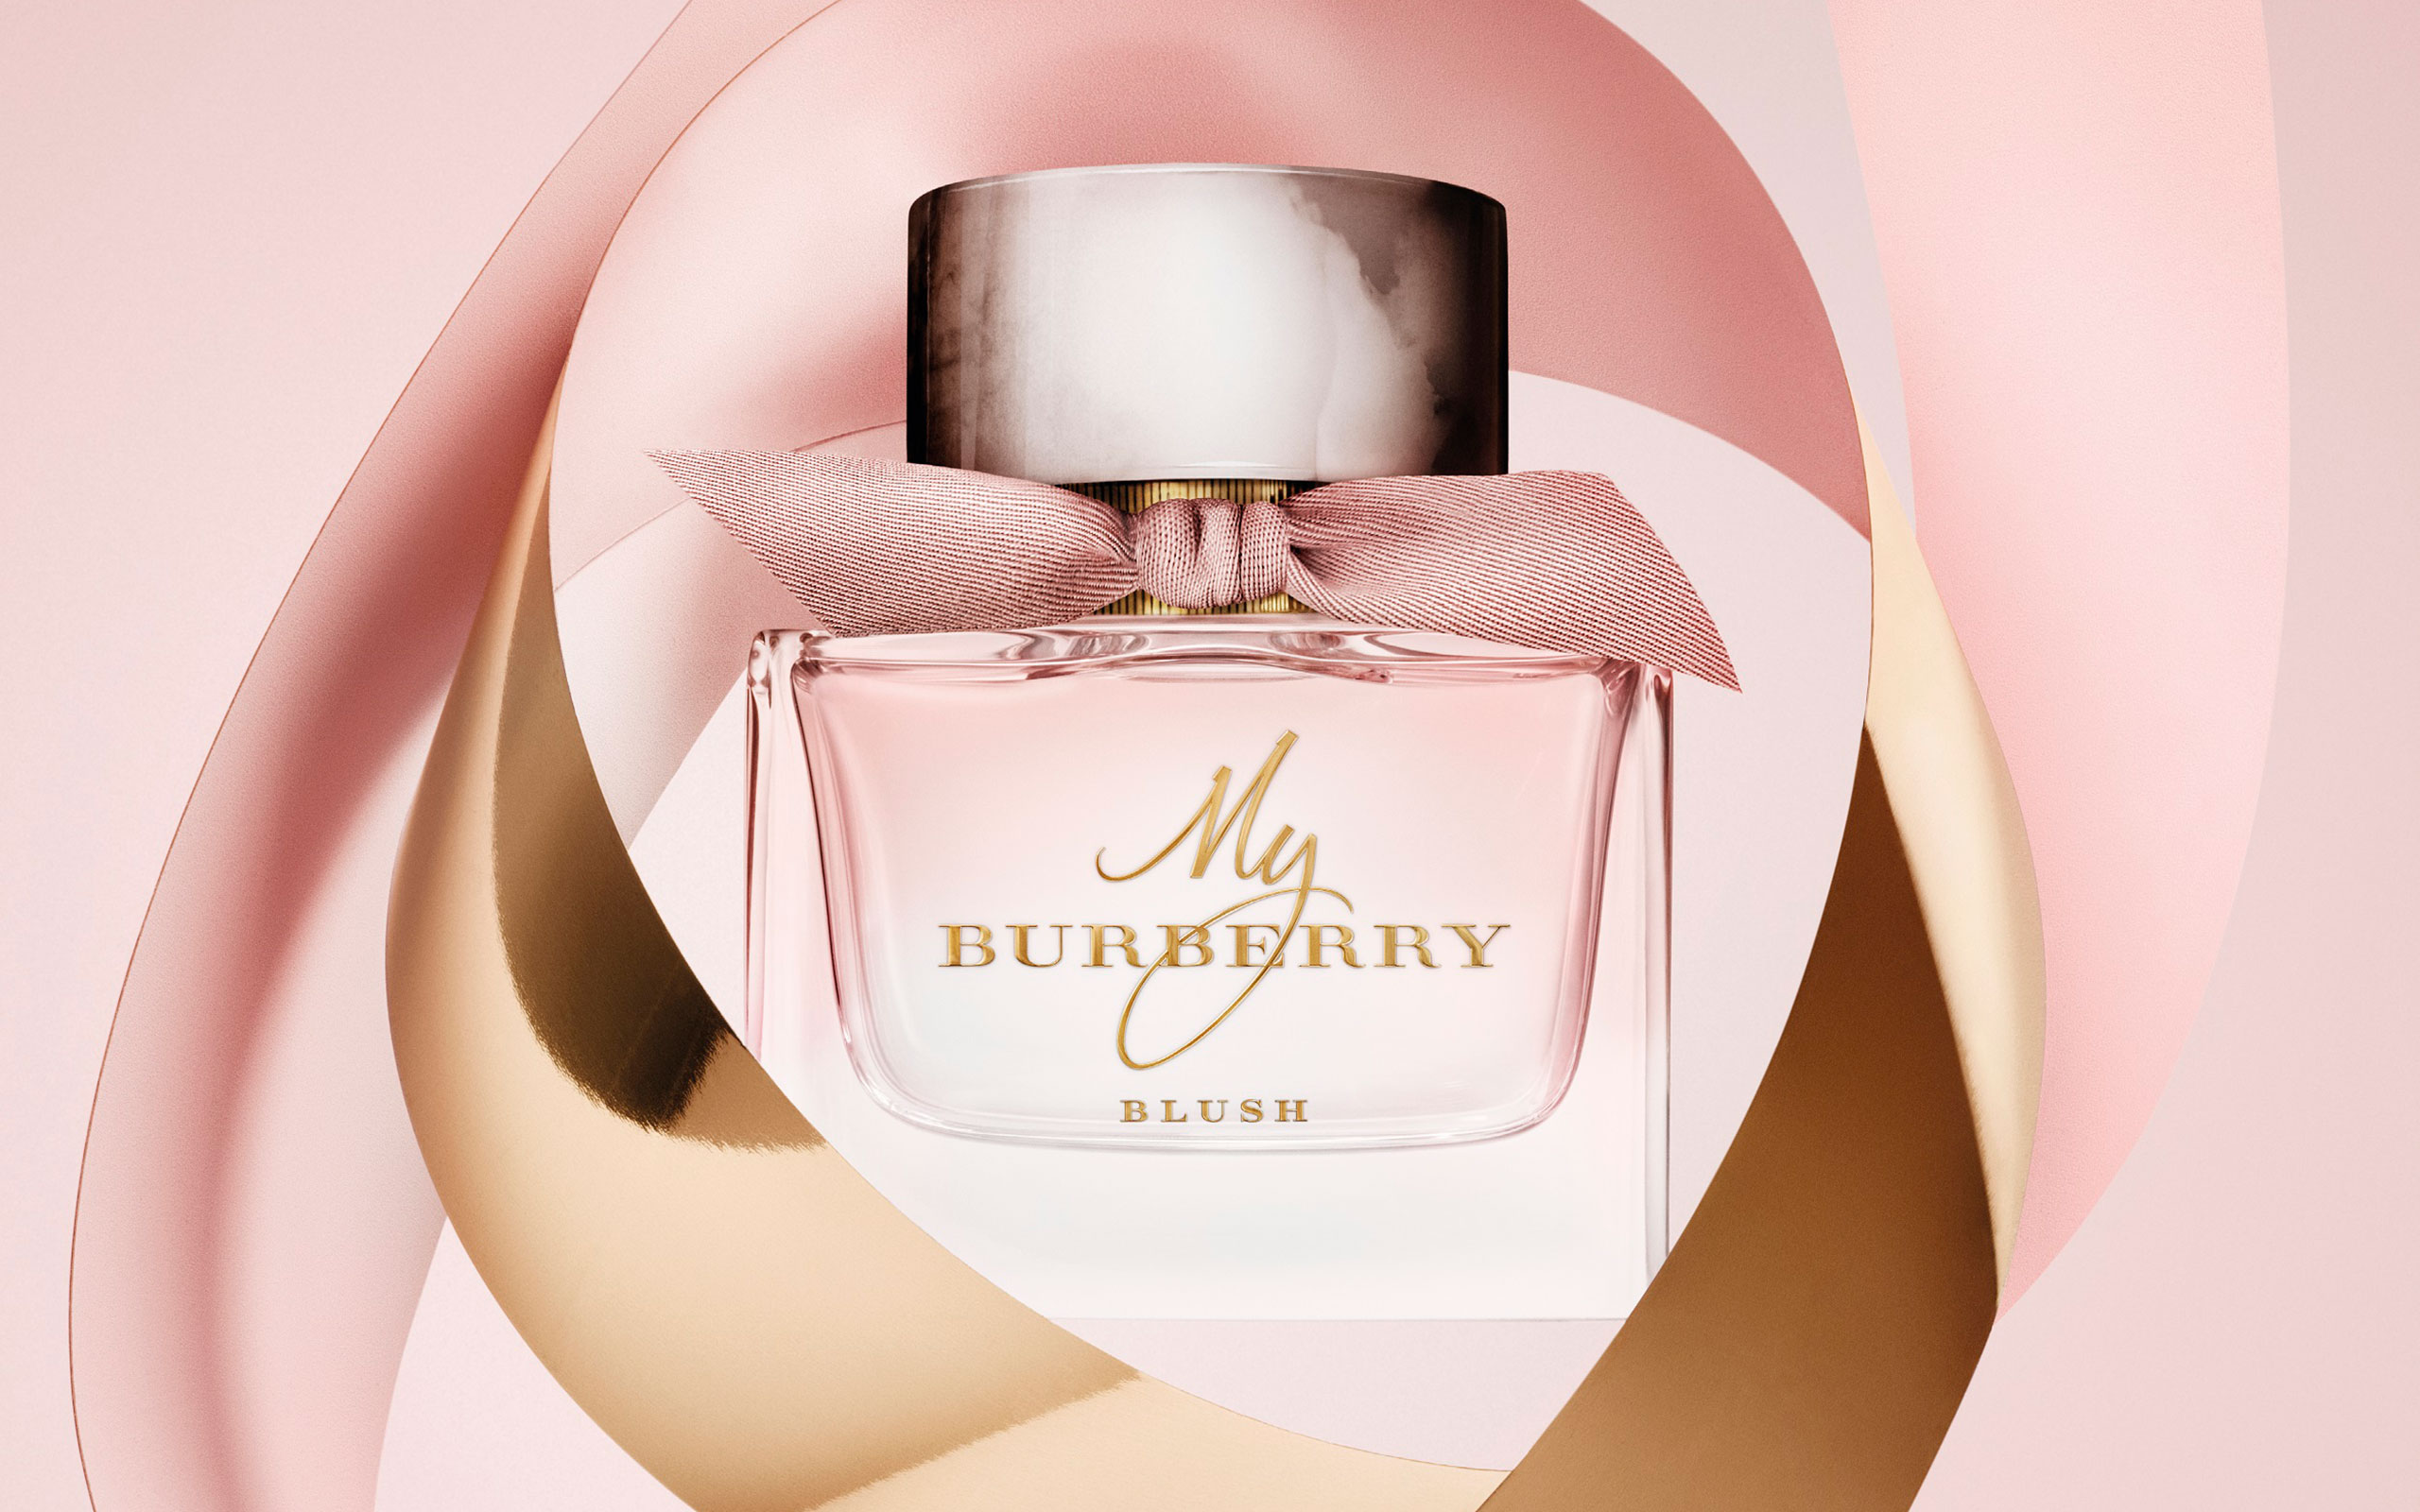 Burberry Lunches New Fragrance 'My Burberry Blush'